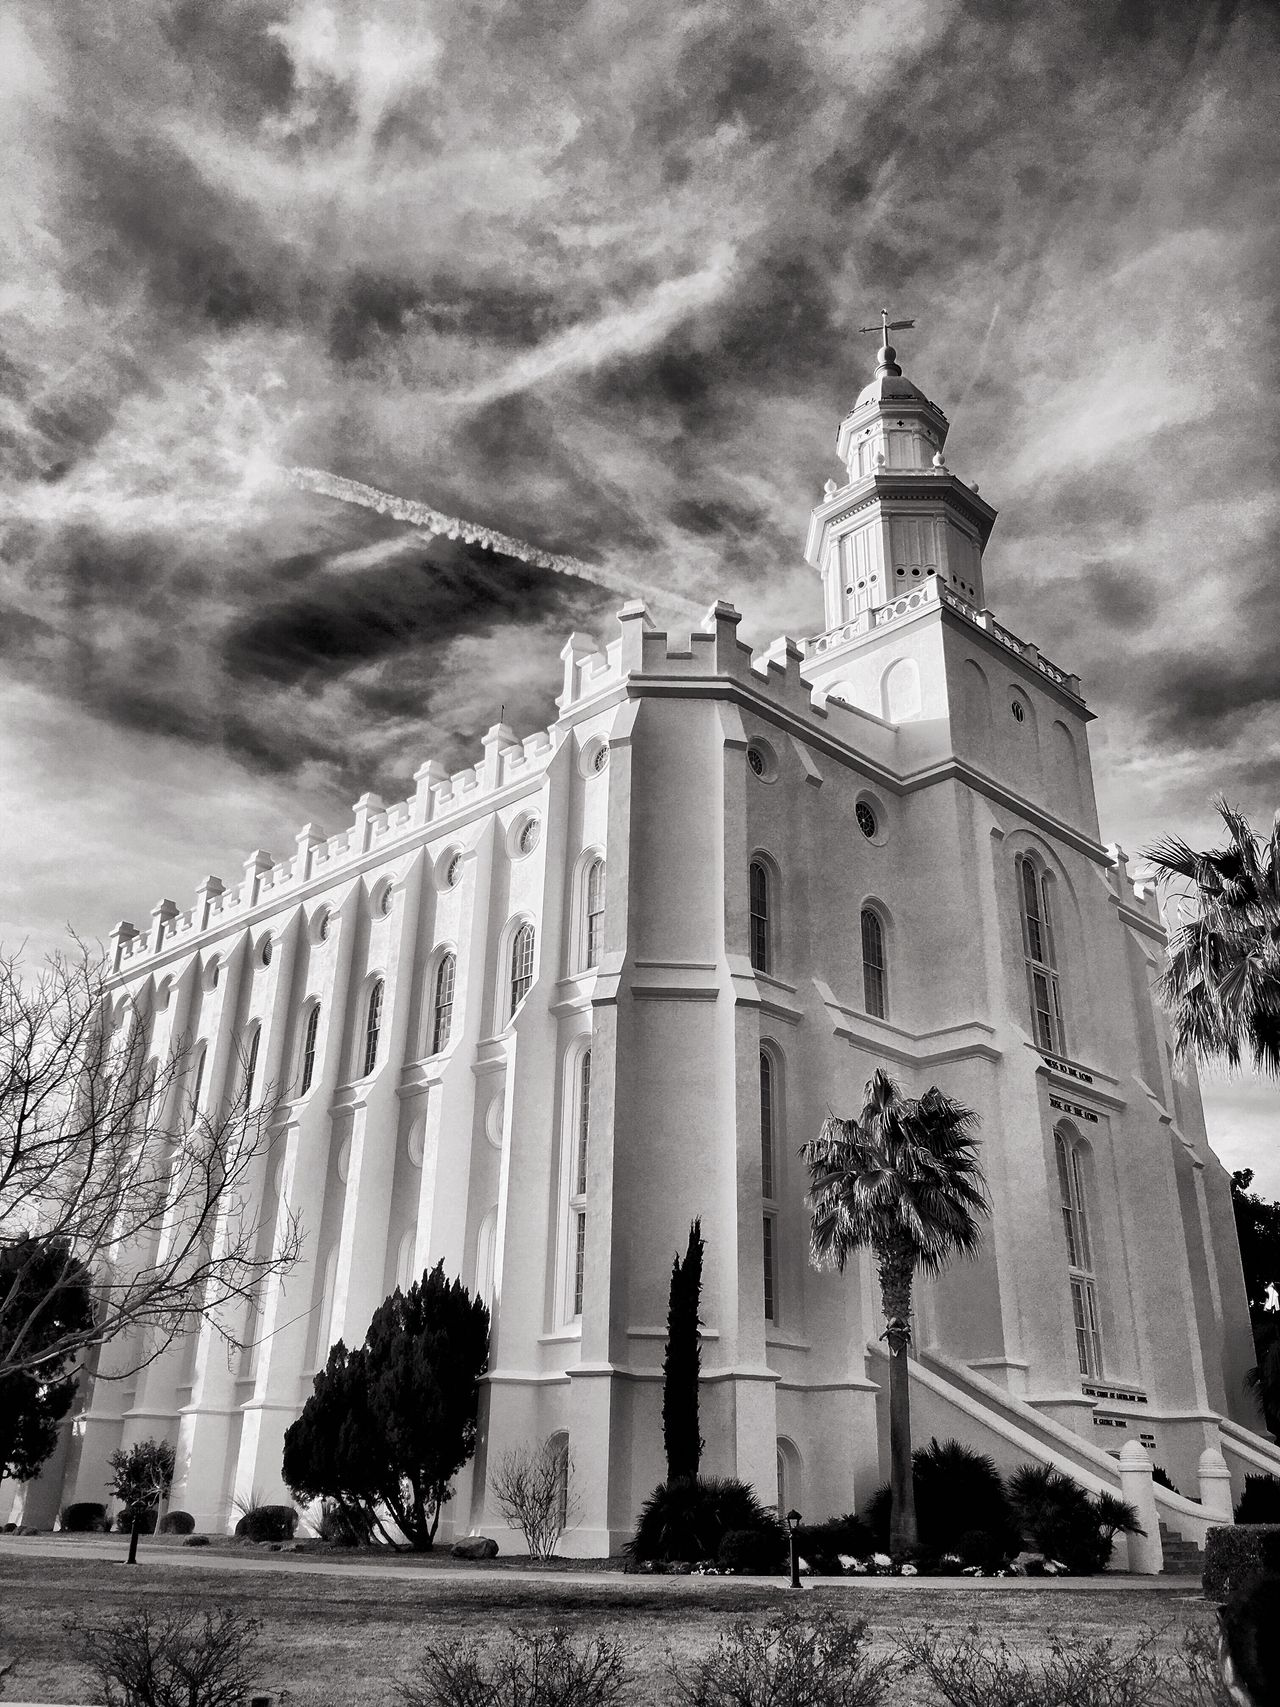 Architecture Built Structure Building Exterior Sky Cloud - Sky Religion Outdoors Tree Low Angle View No People Day Place Of Worship EyeEm Best Shots - Black + White Blackandwhite Black And White EyeEm Taking Photos EyeEmBestPics Eyeemphotography Eye4photography  Beautiful Temple Lds LDS Temple Low Angle View